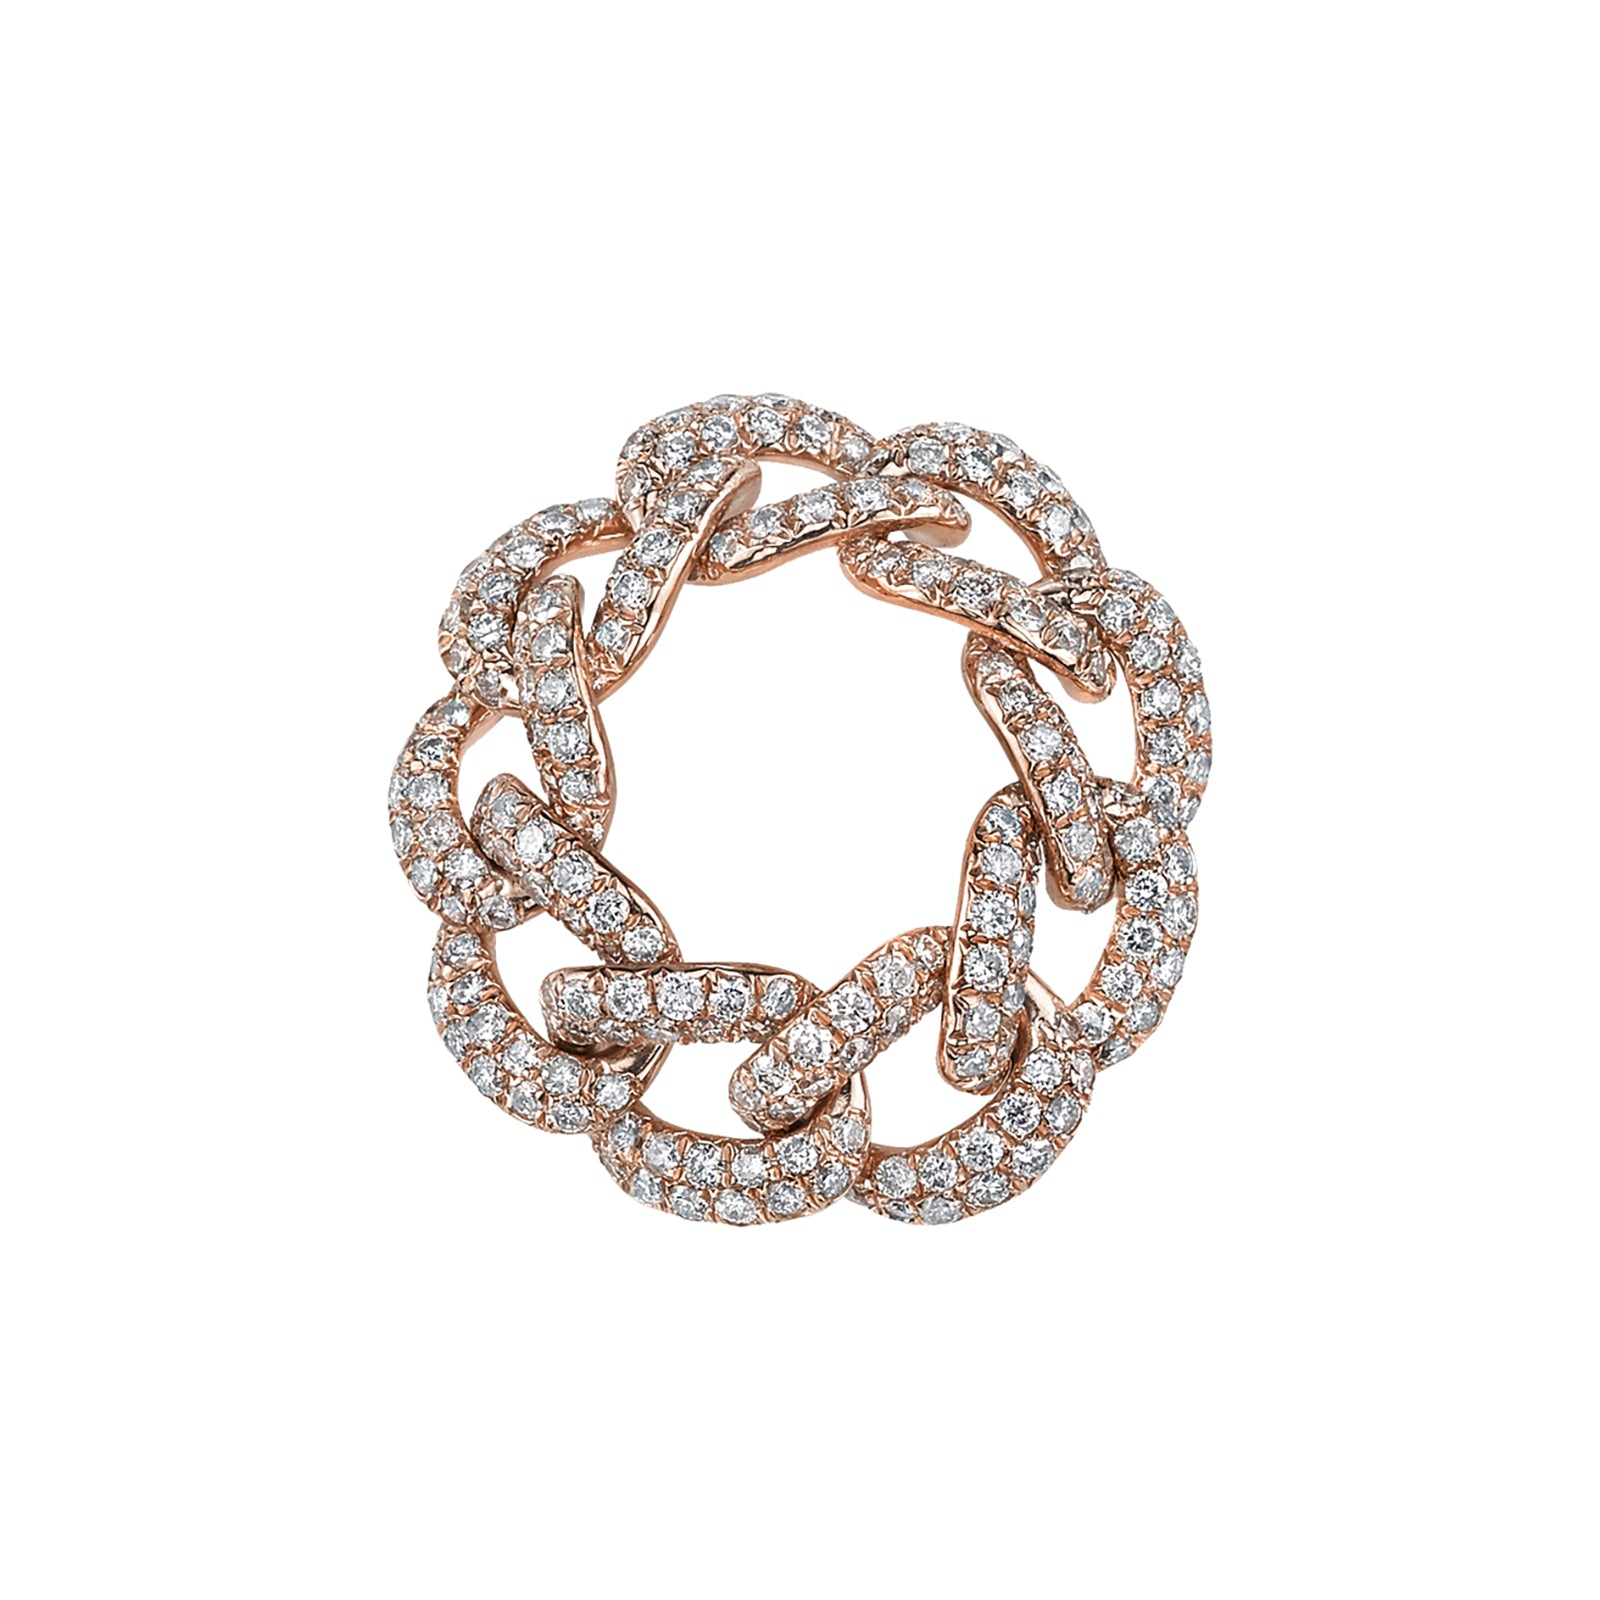 Shay Essential Pave Link Ring - Rose Gold - Rings - Broken English Jewelry